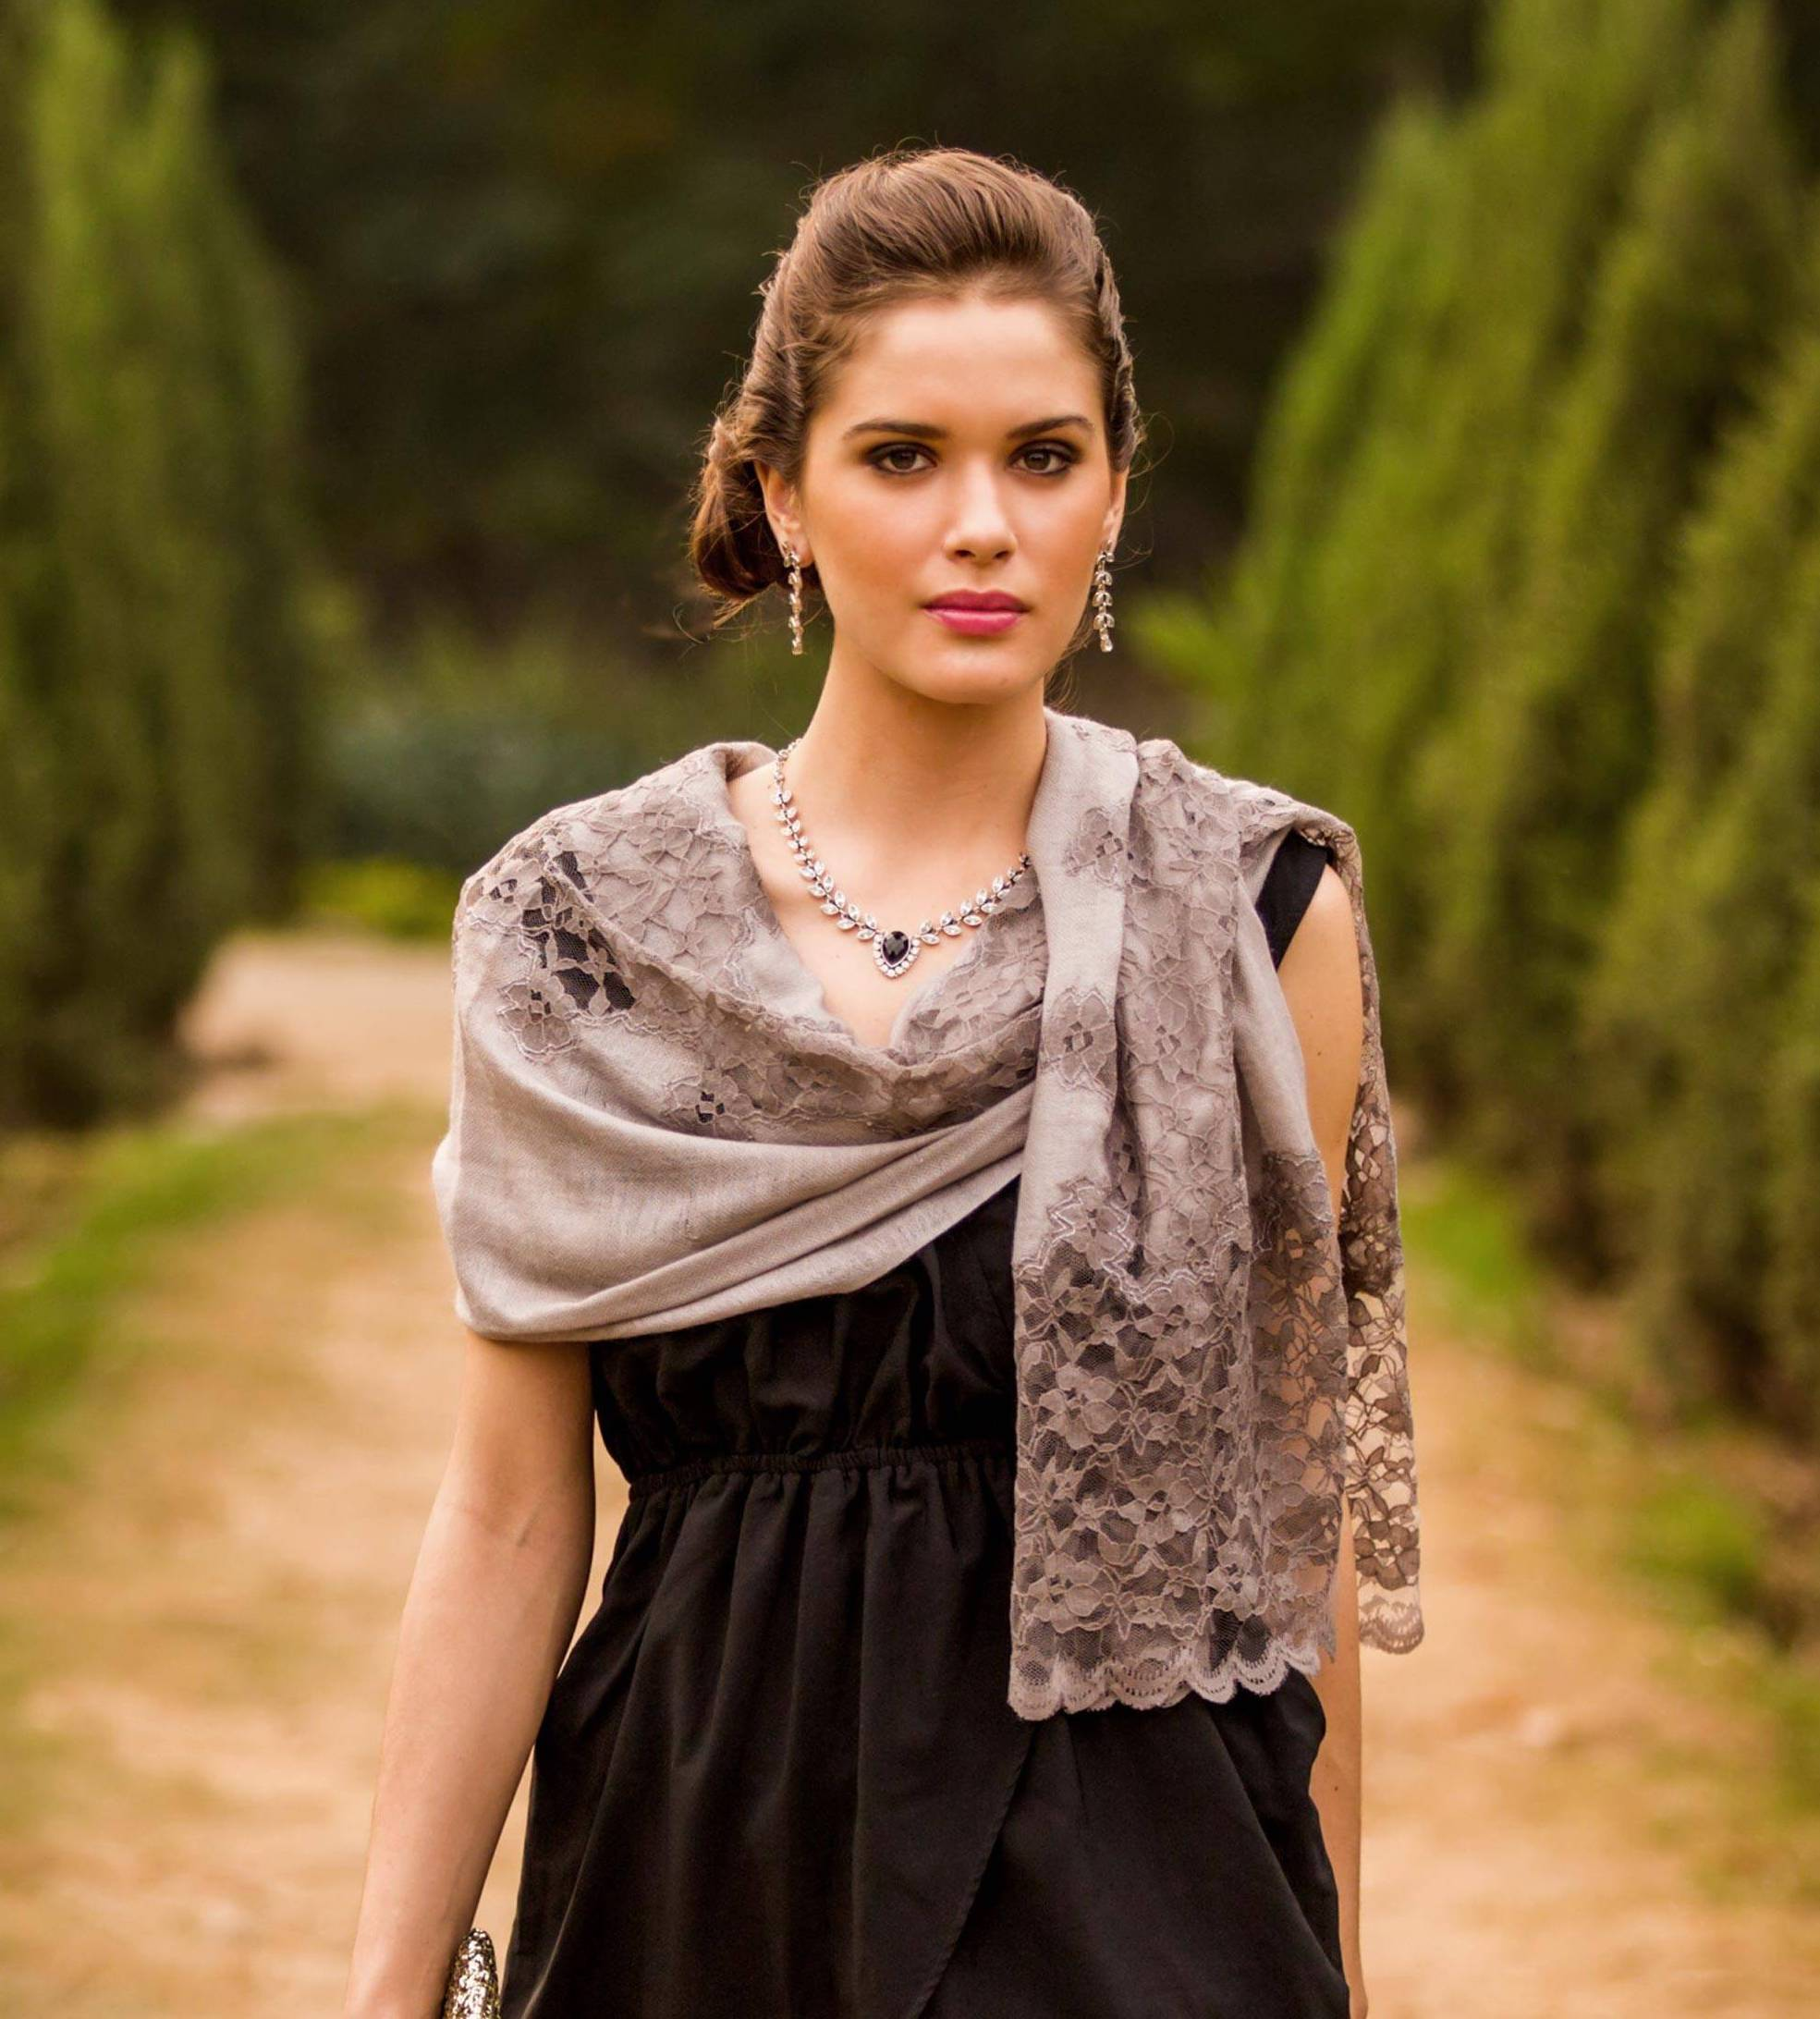 Infinite Kashmir Taupe Grey Wool Blend Shawl Trimmed with Floral Lace small gift